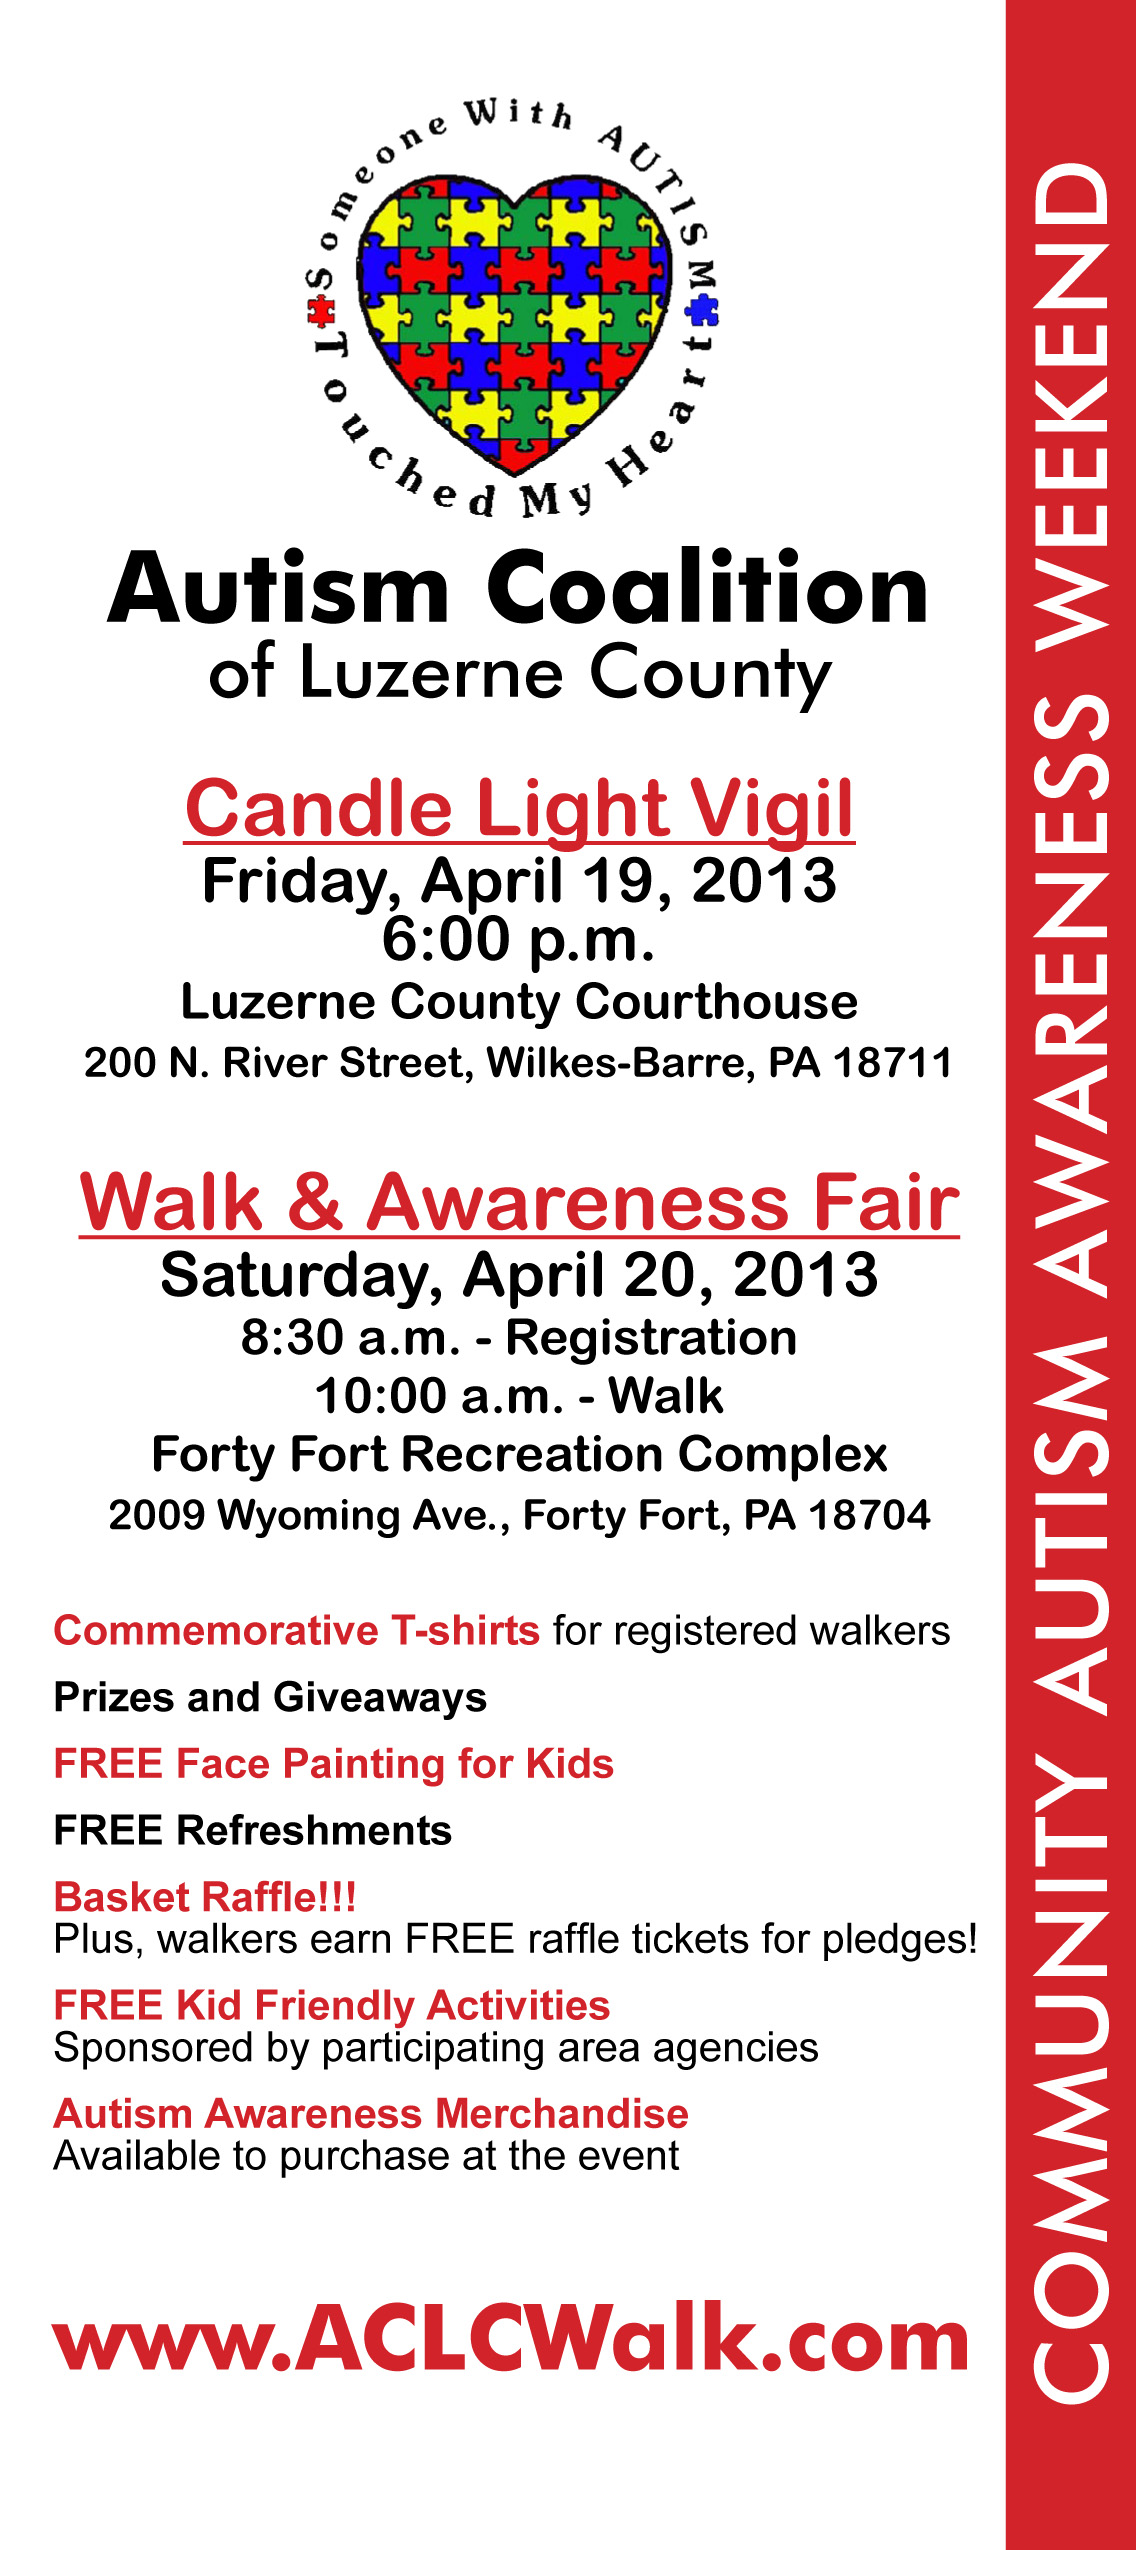 To register for the 2013 ACLC Walk, please print and mail